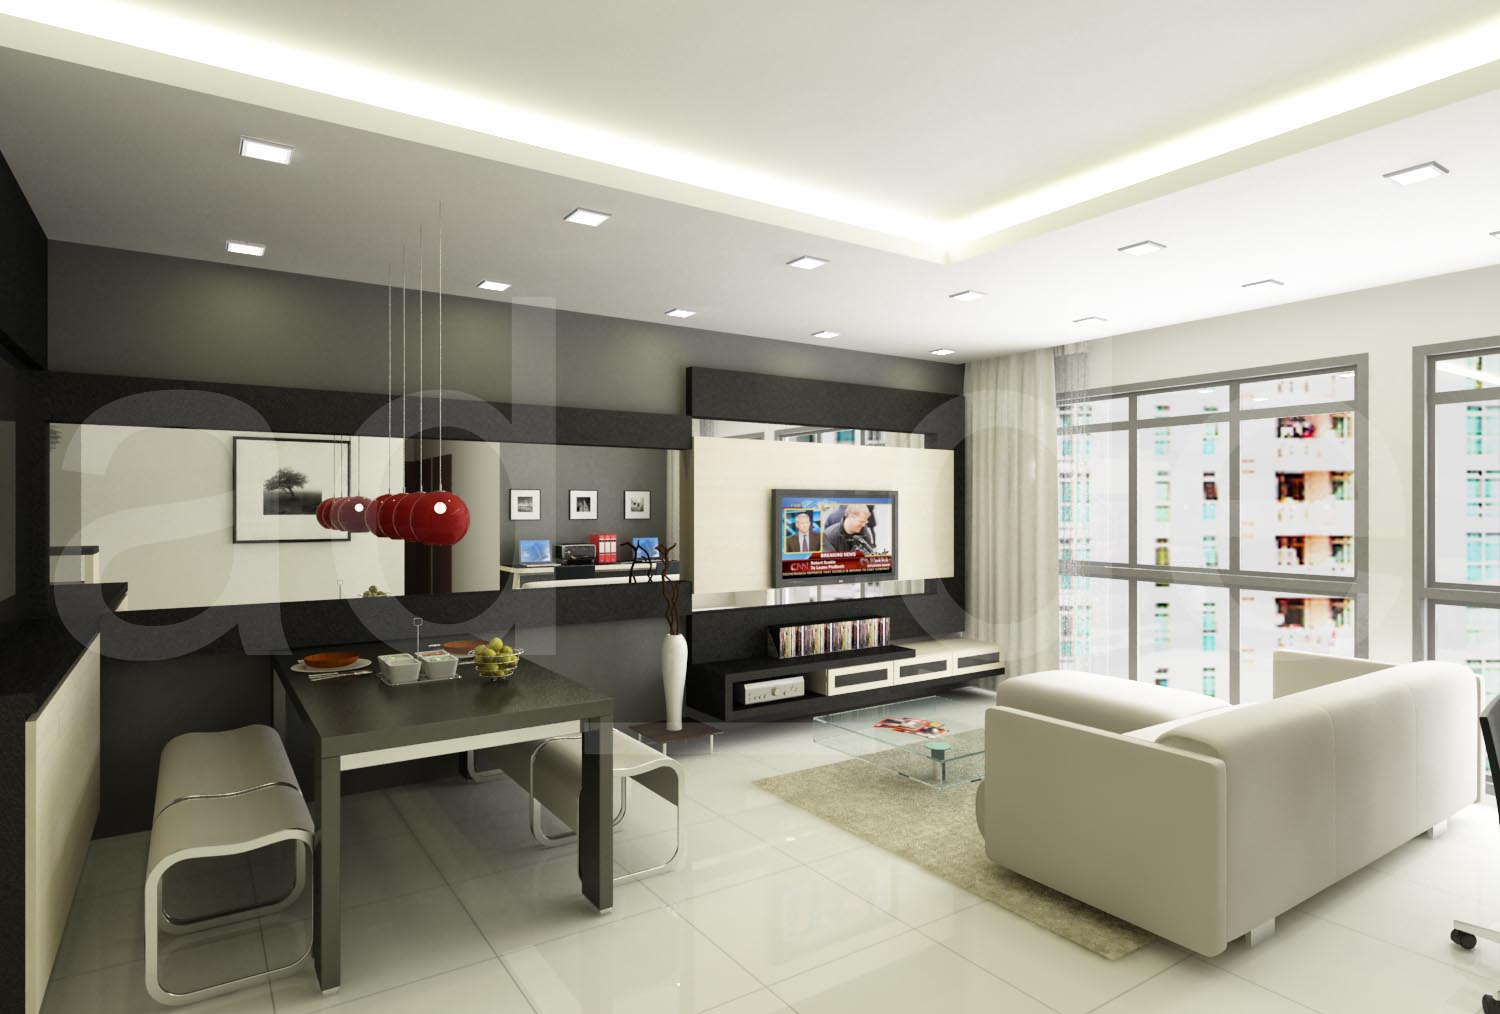 Hdb living room design ideas singapore for Room decor ideas singapore